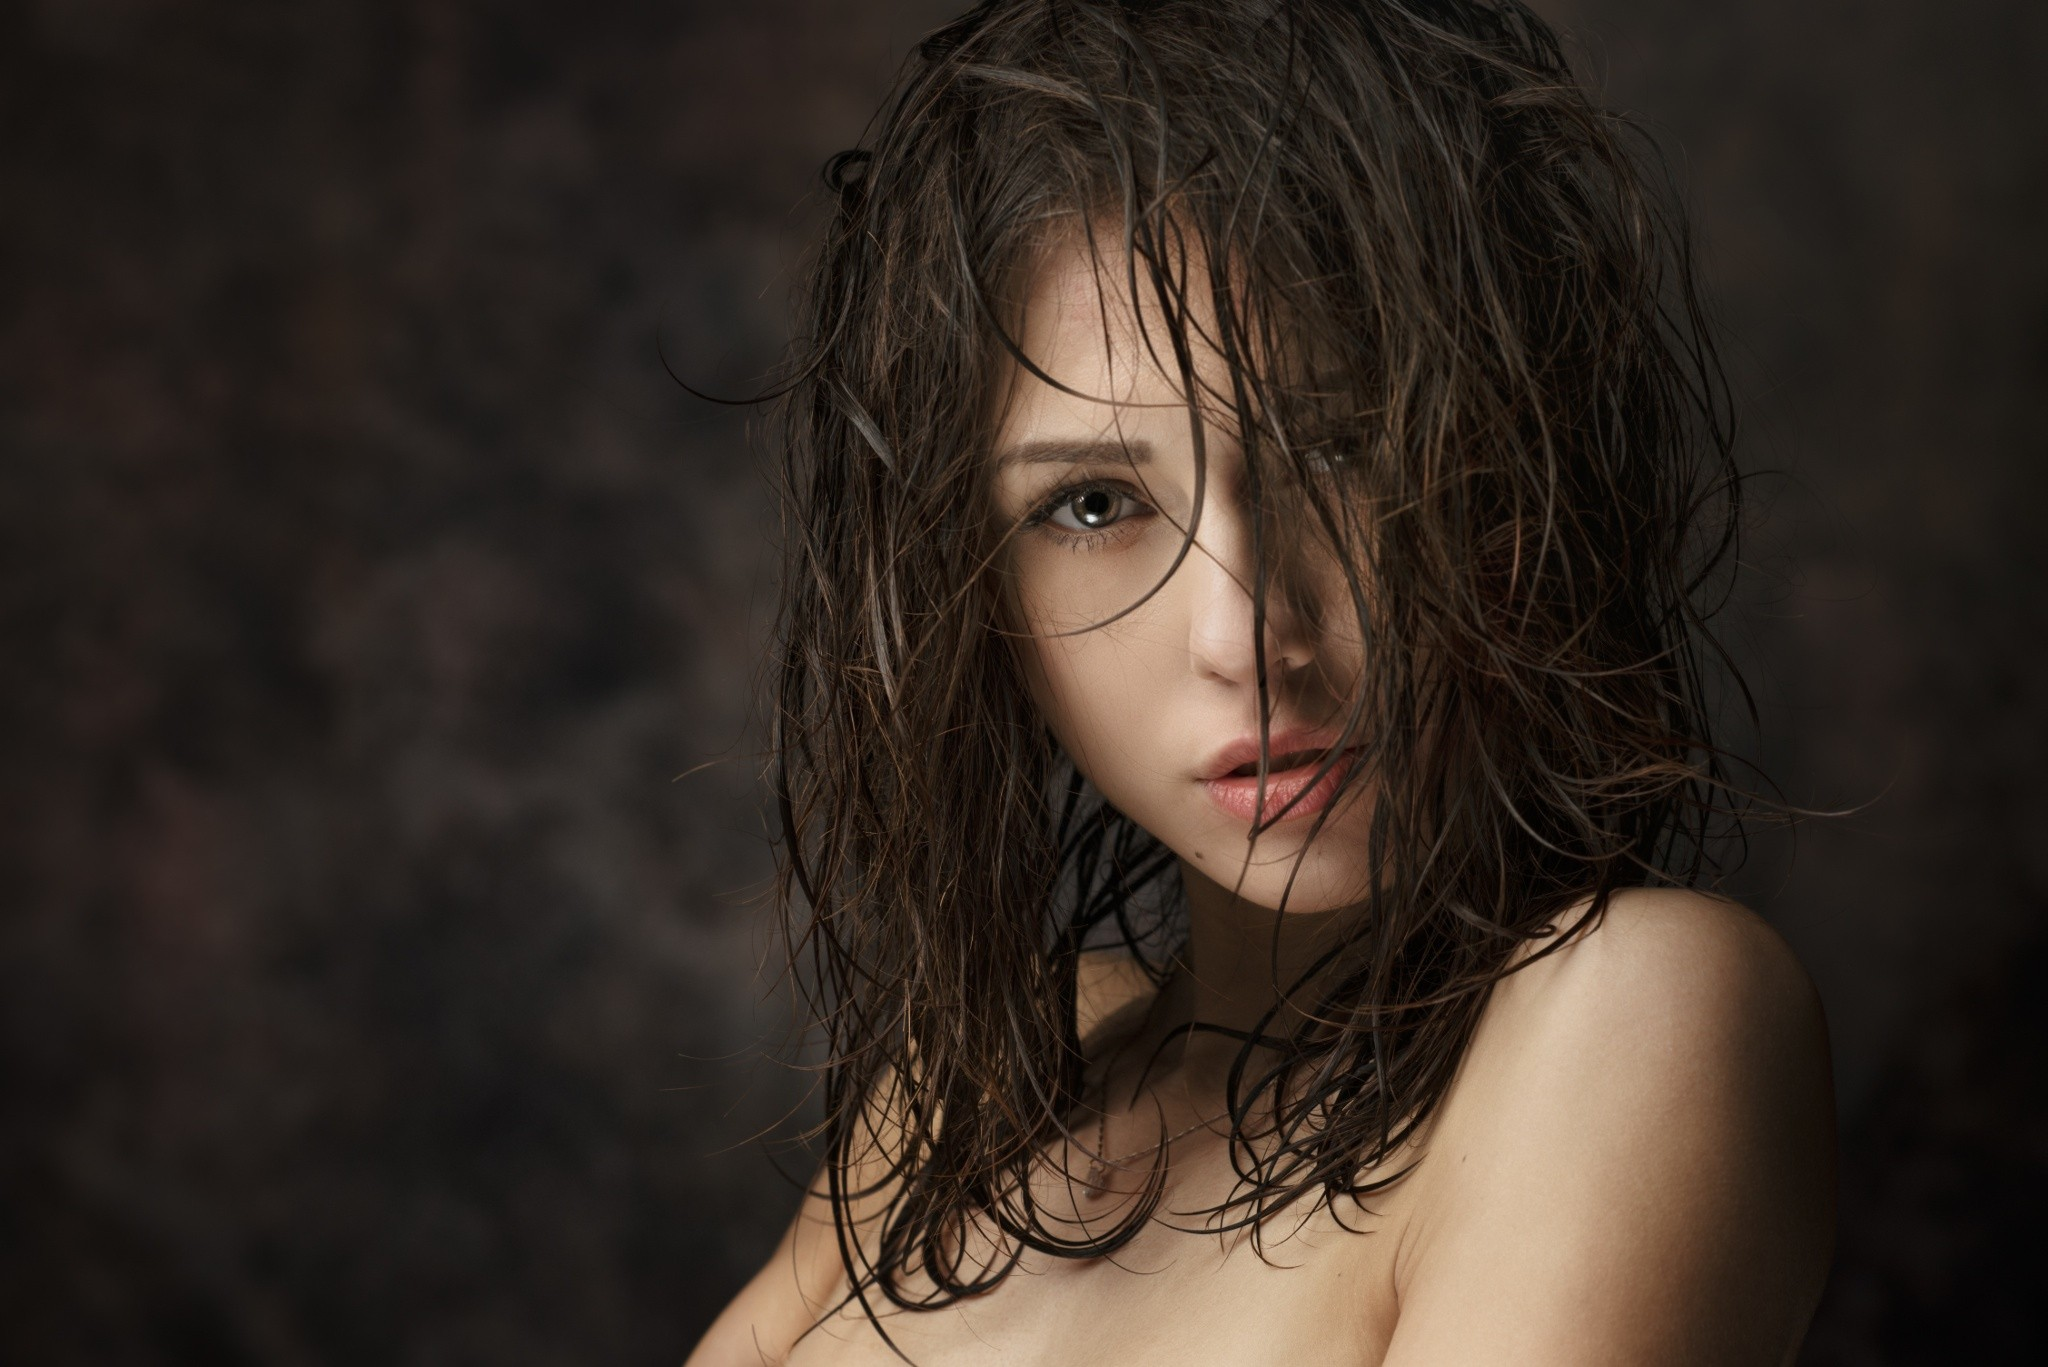 catherine timokhina, wet hair, open mouth, brunette, depth of field